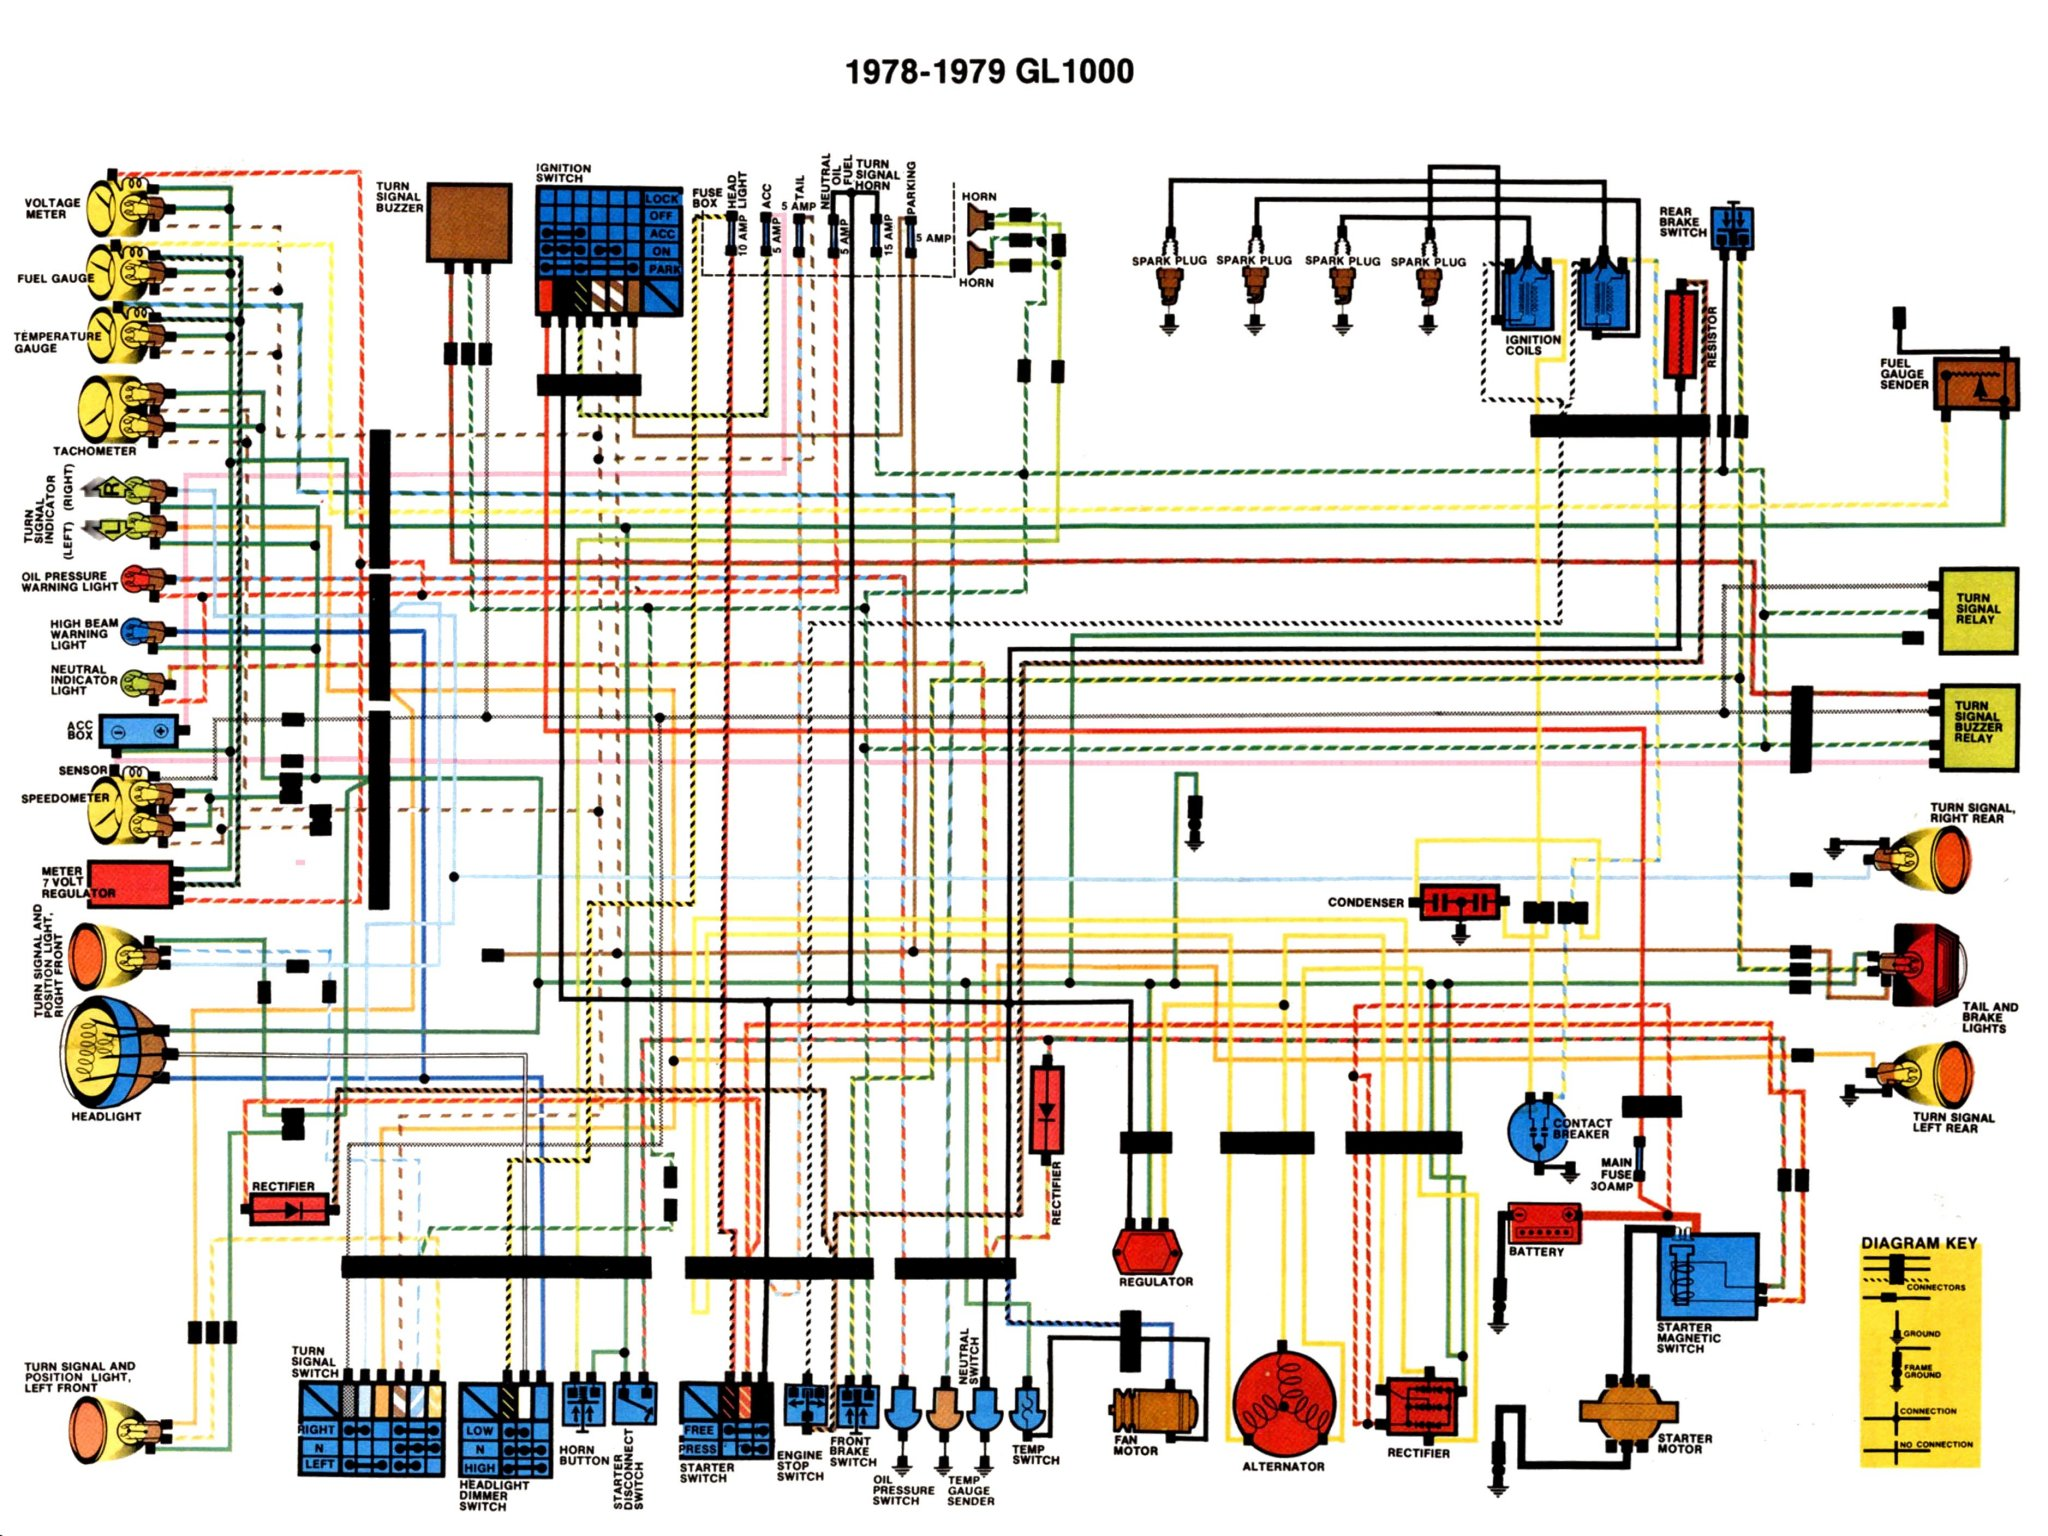 1978_79_GL1000_Colour_Schematic?m=1389574447 1978 79 gl1000 colour schematic b  at bayanpartner.co